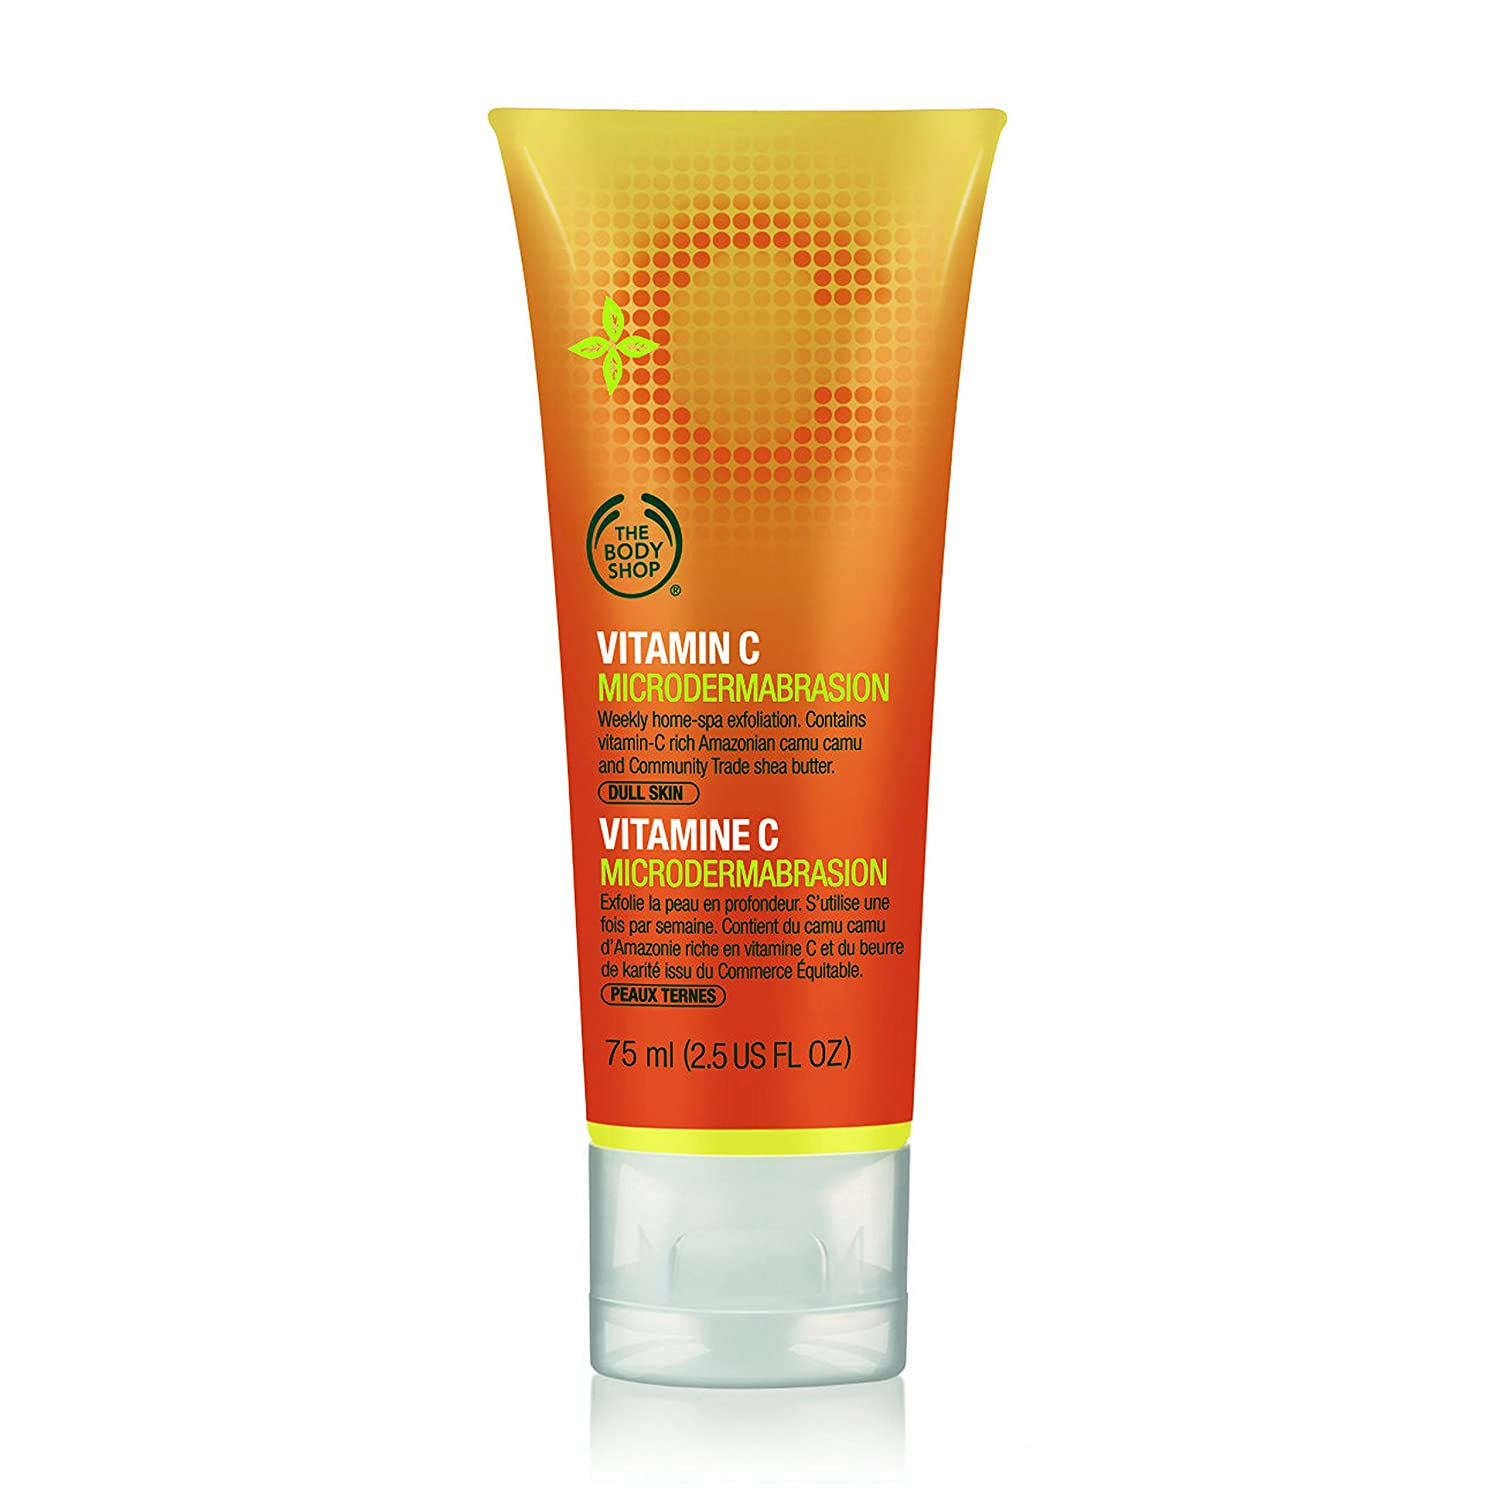 Buy The Body Shop Vitamin C Microdermabrasion 75ml Online At Low